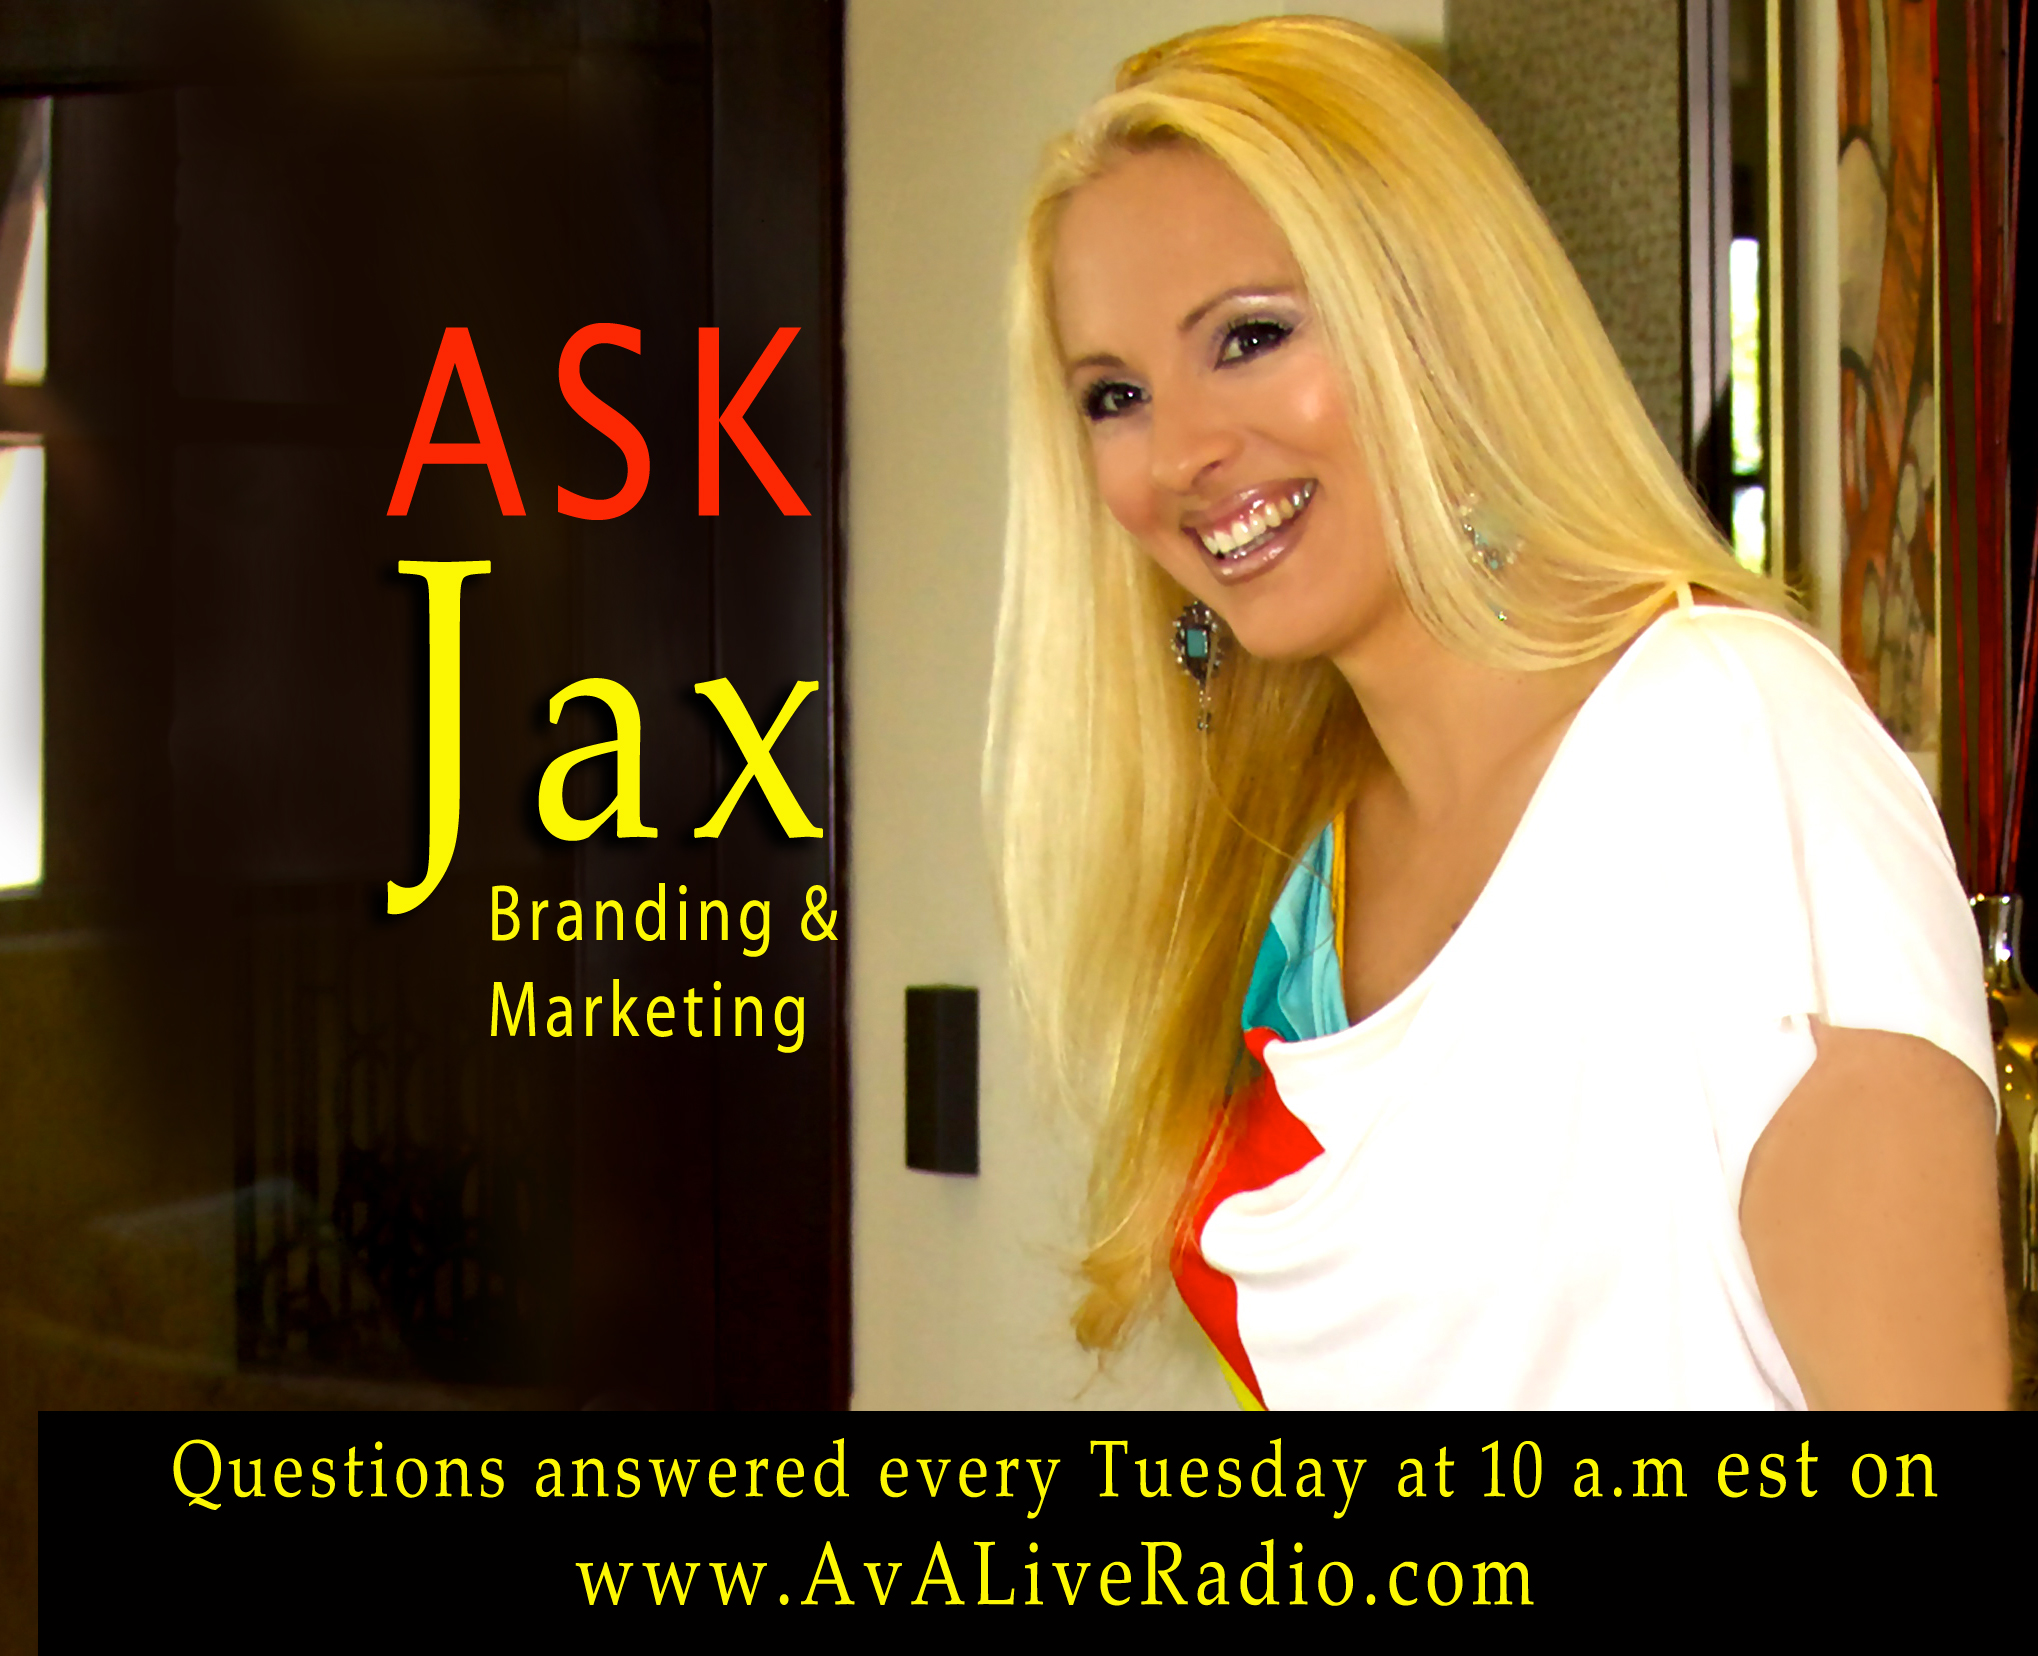 Jacqueline_Jax_branding_success